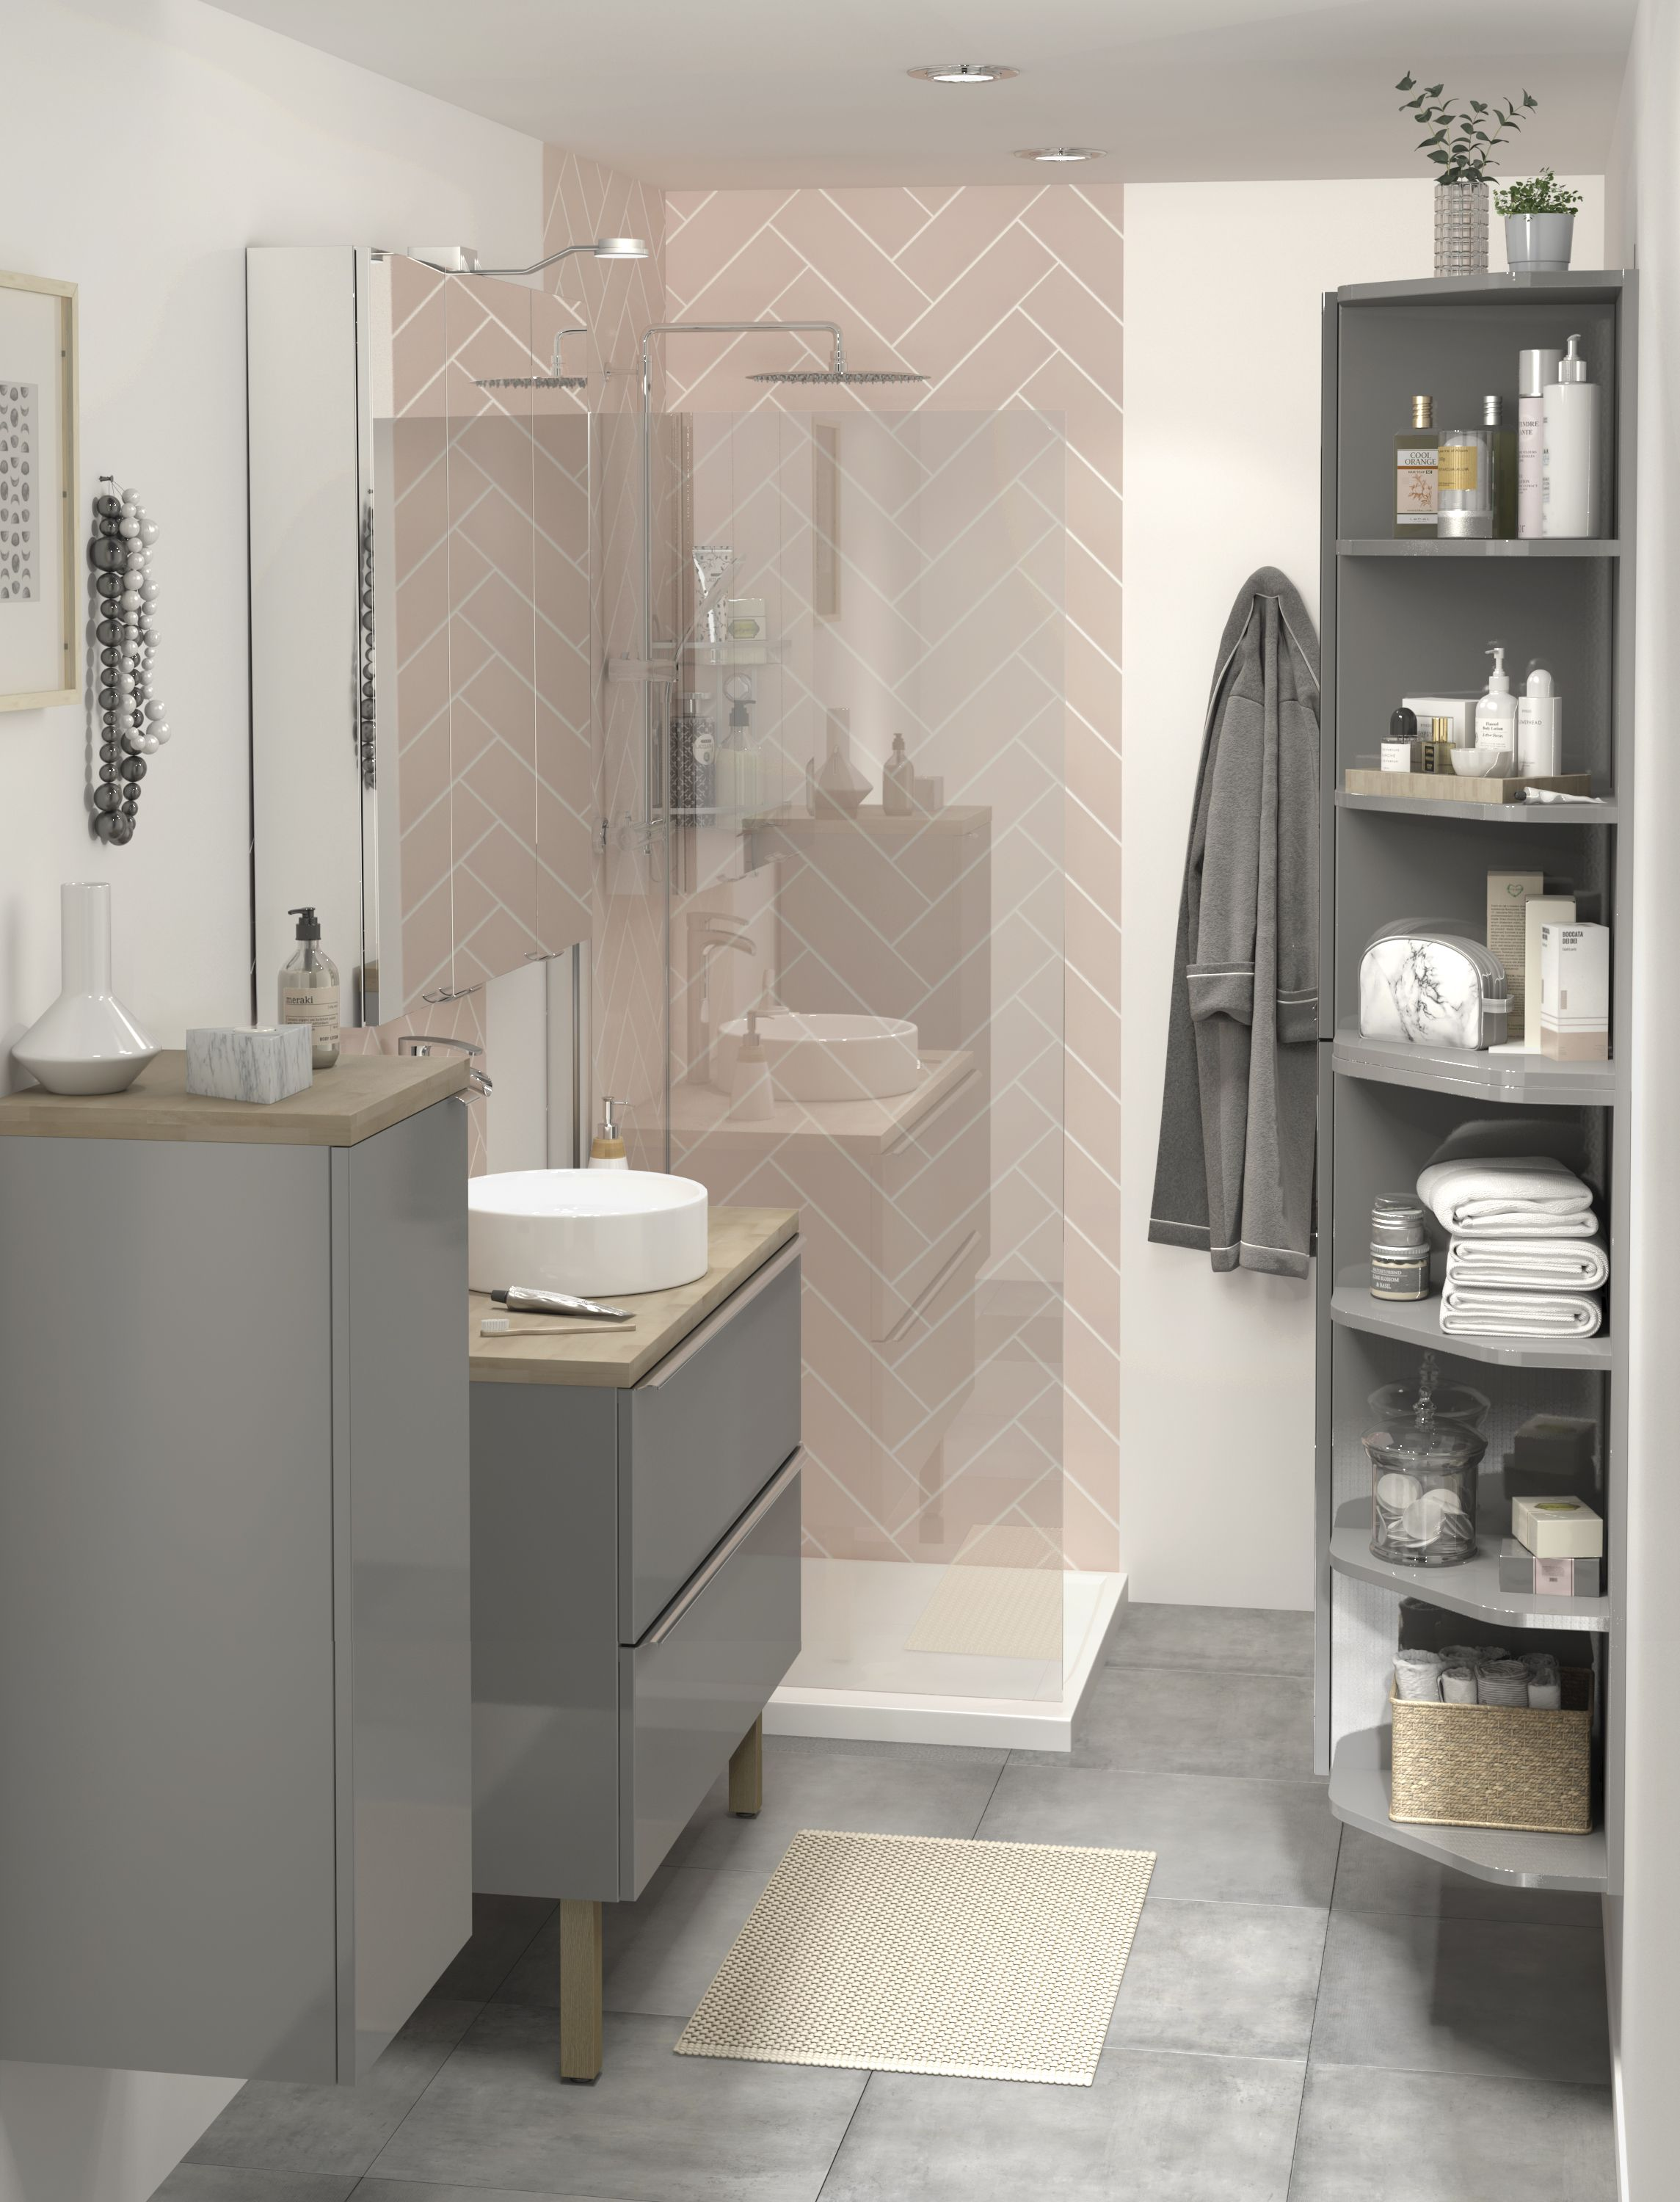 The Imandra Bathroom Collection From B Q Not Only Comes In A Variety